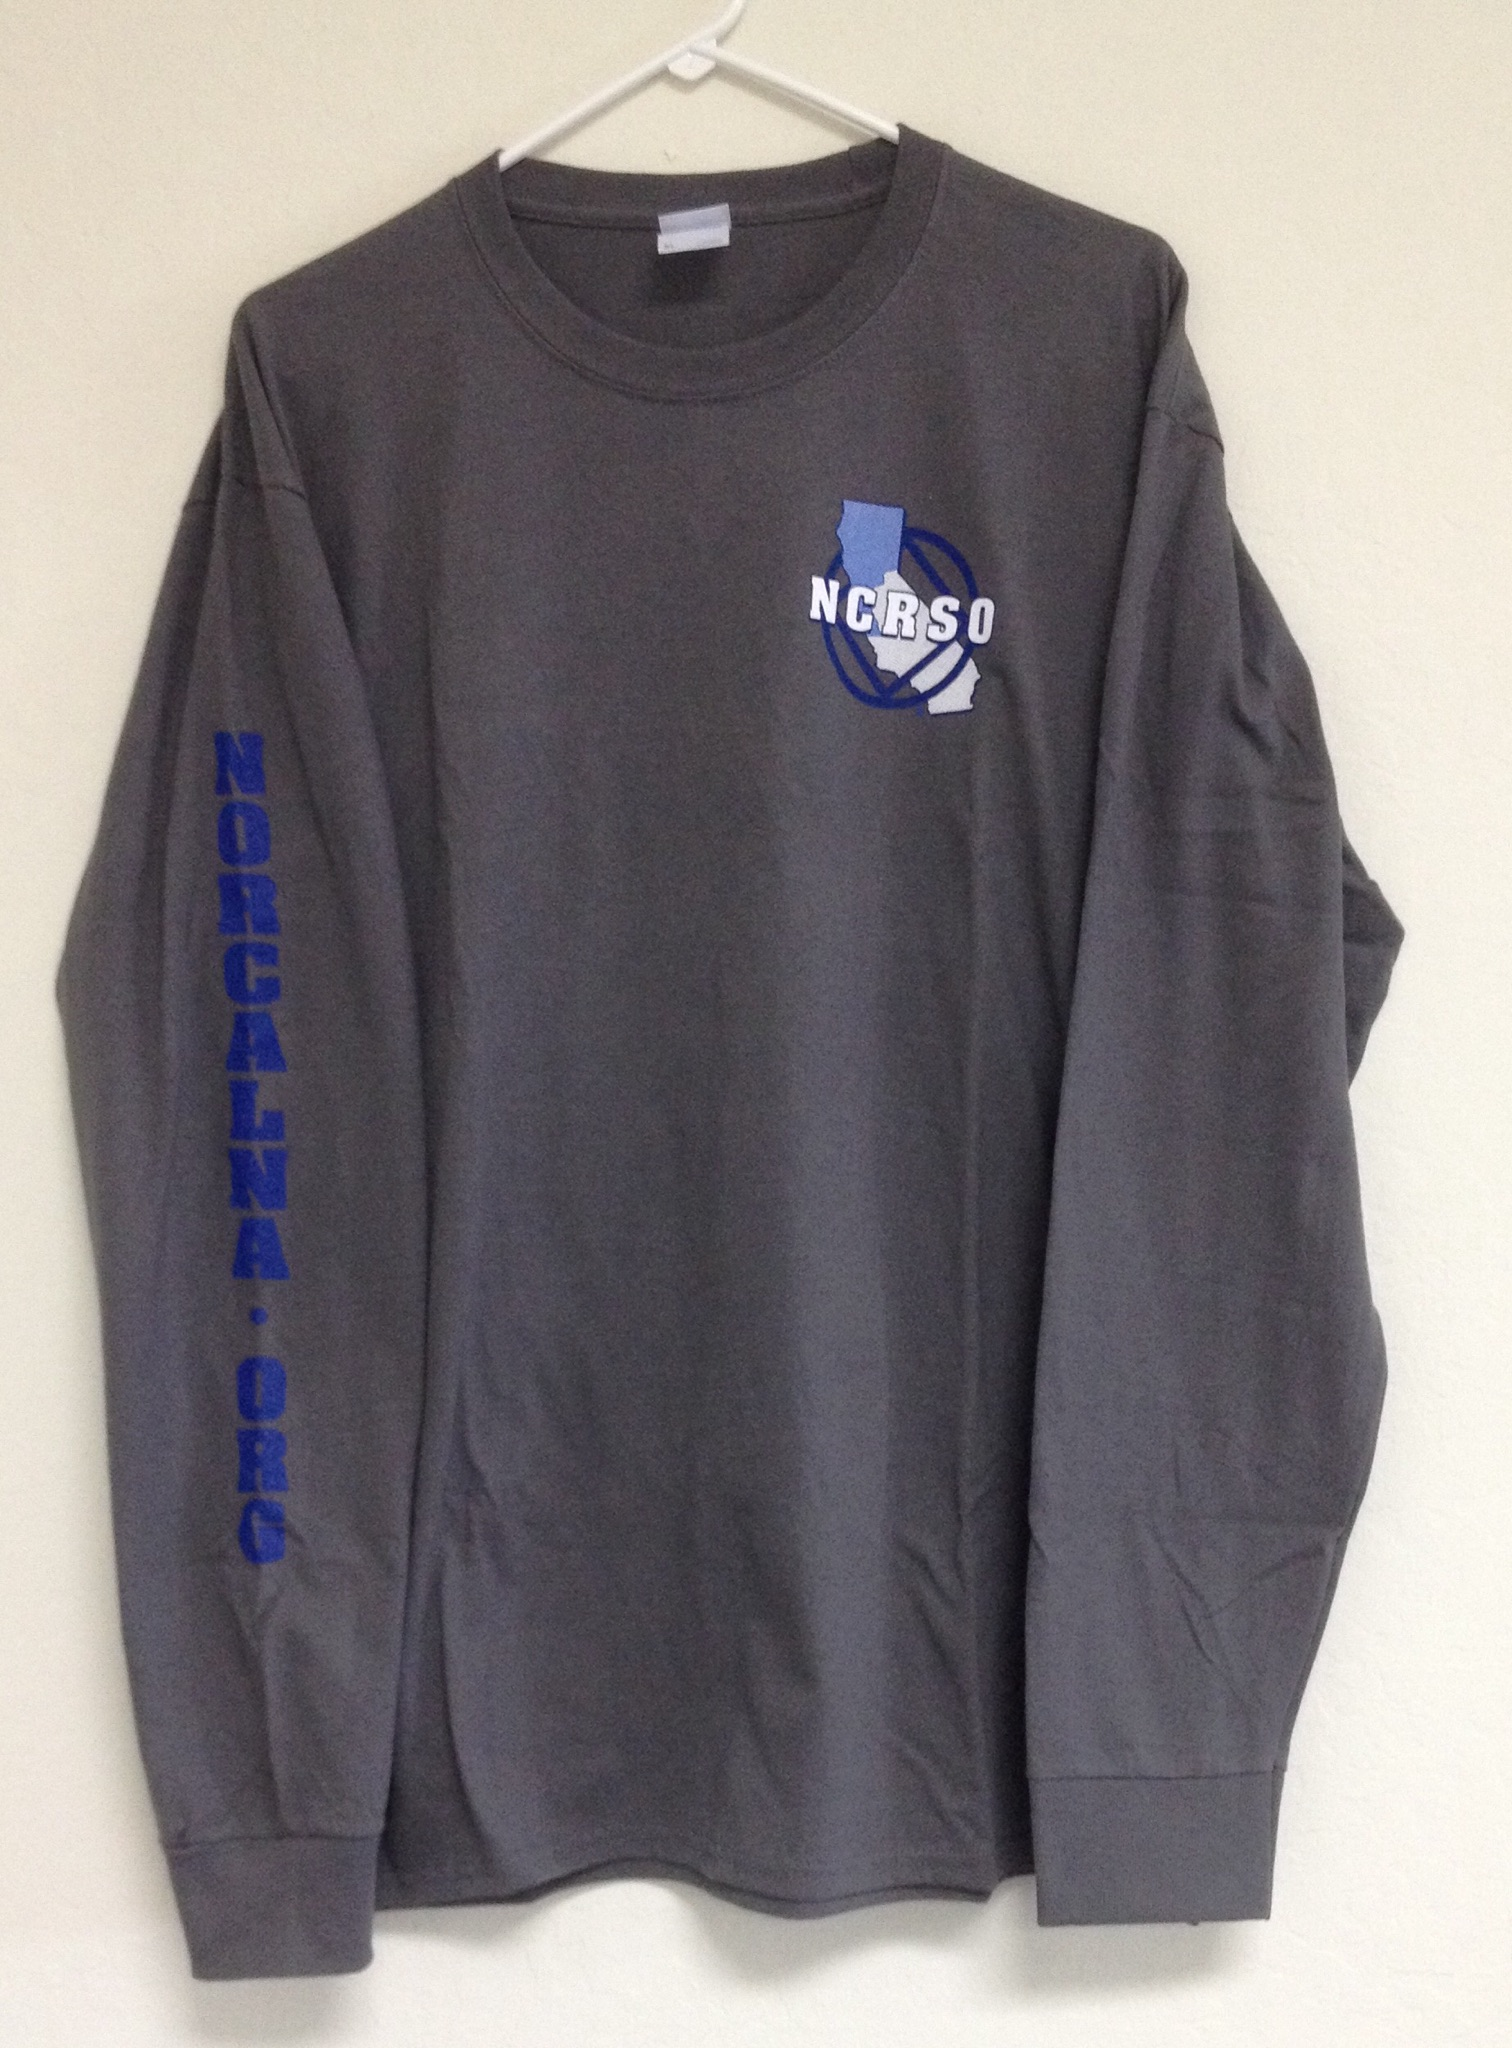 NCRSO Long Sleeve Shirt